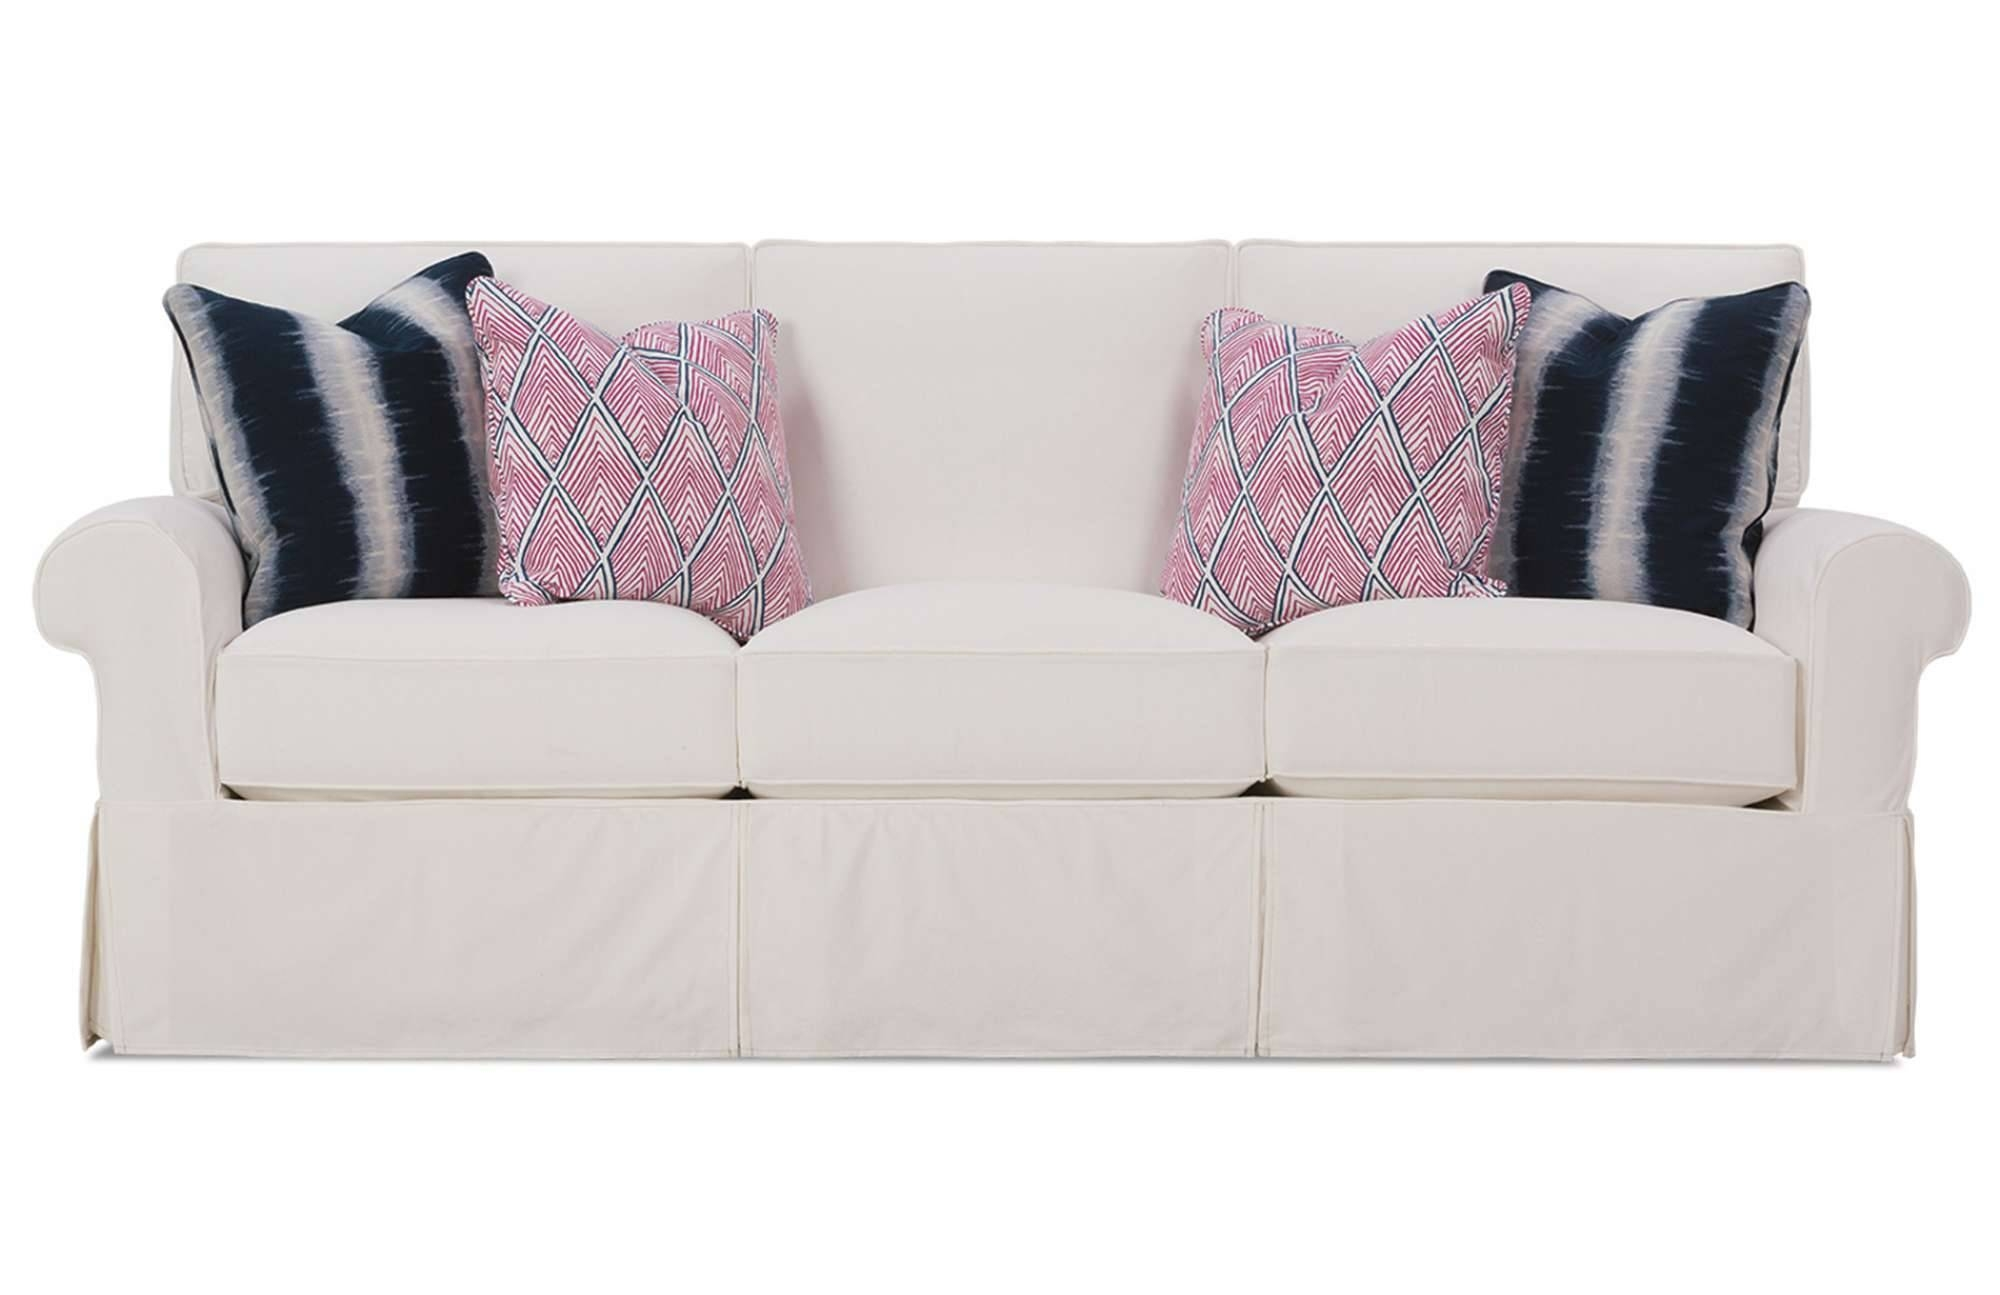 Easton Slipcover Sofarowe Furniture with Rowe Slipcovers (Image 2 of 15)